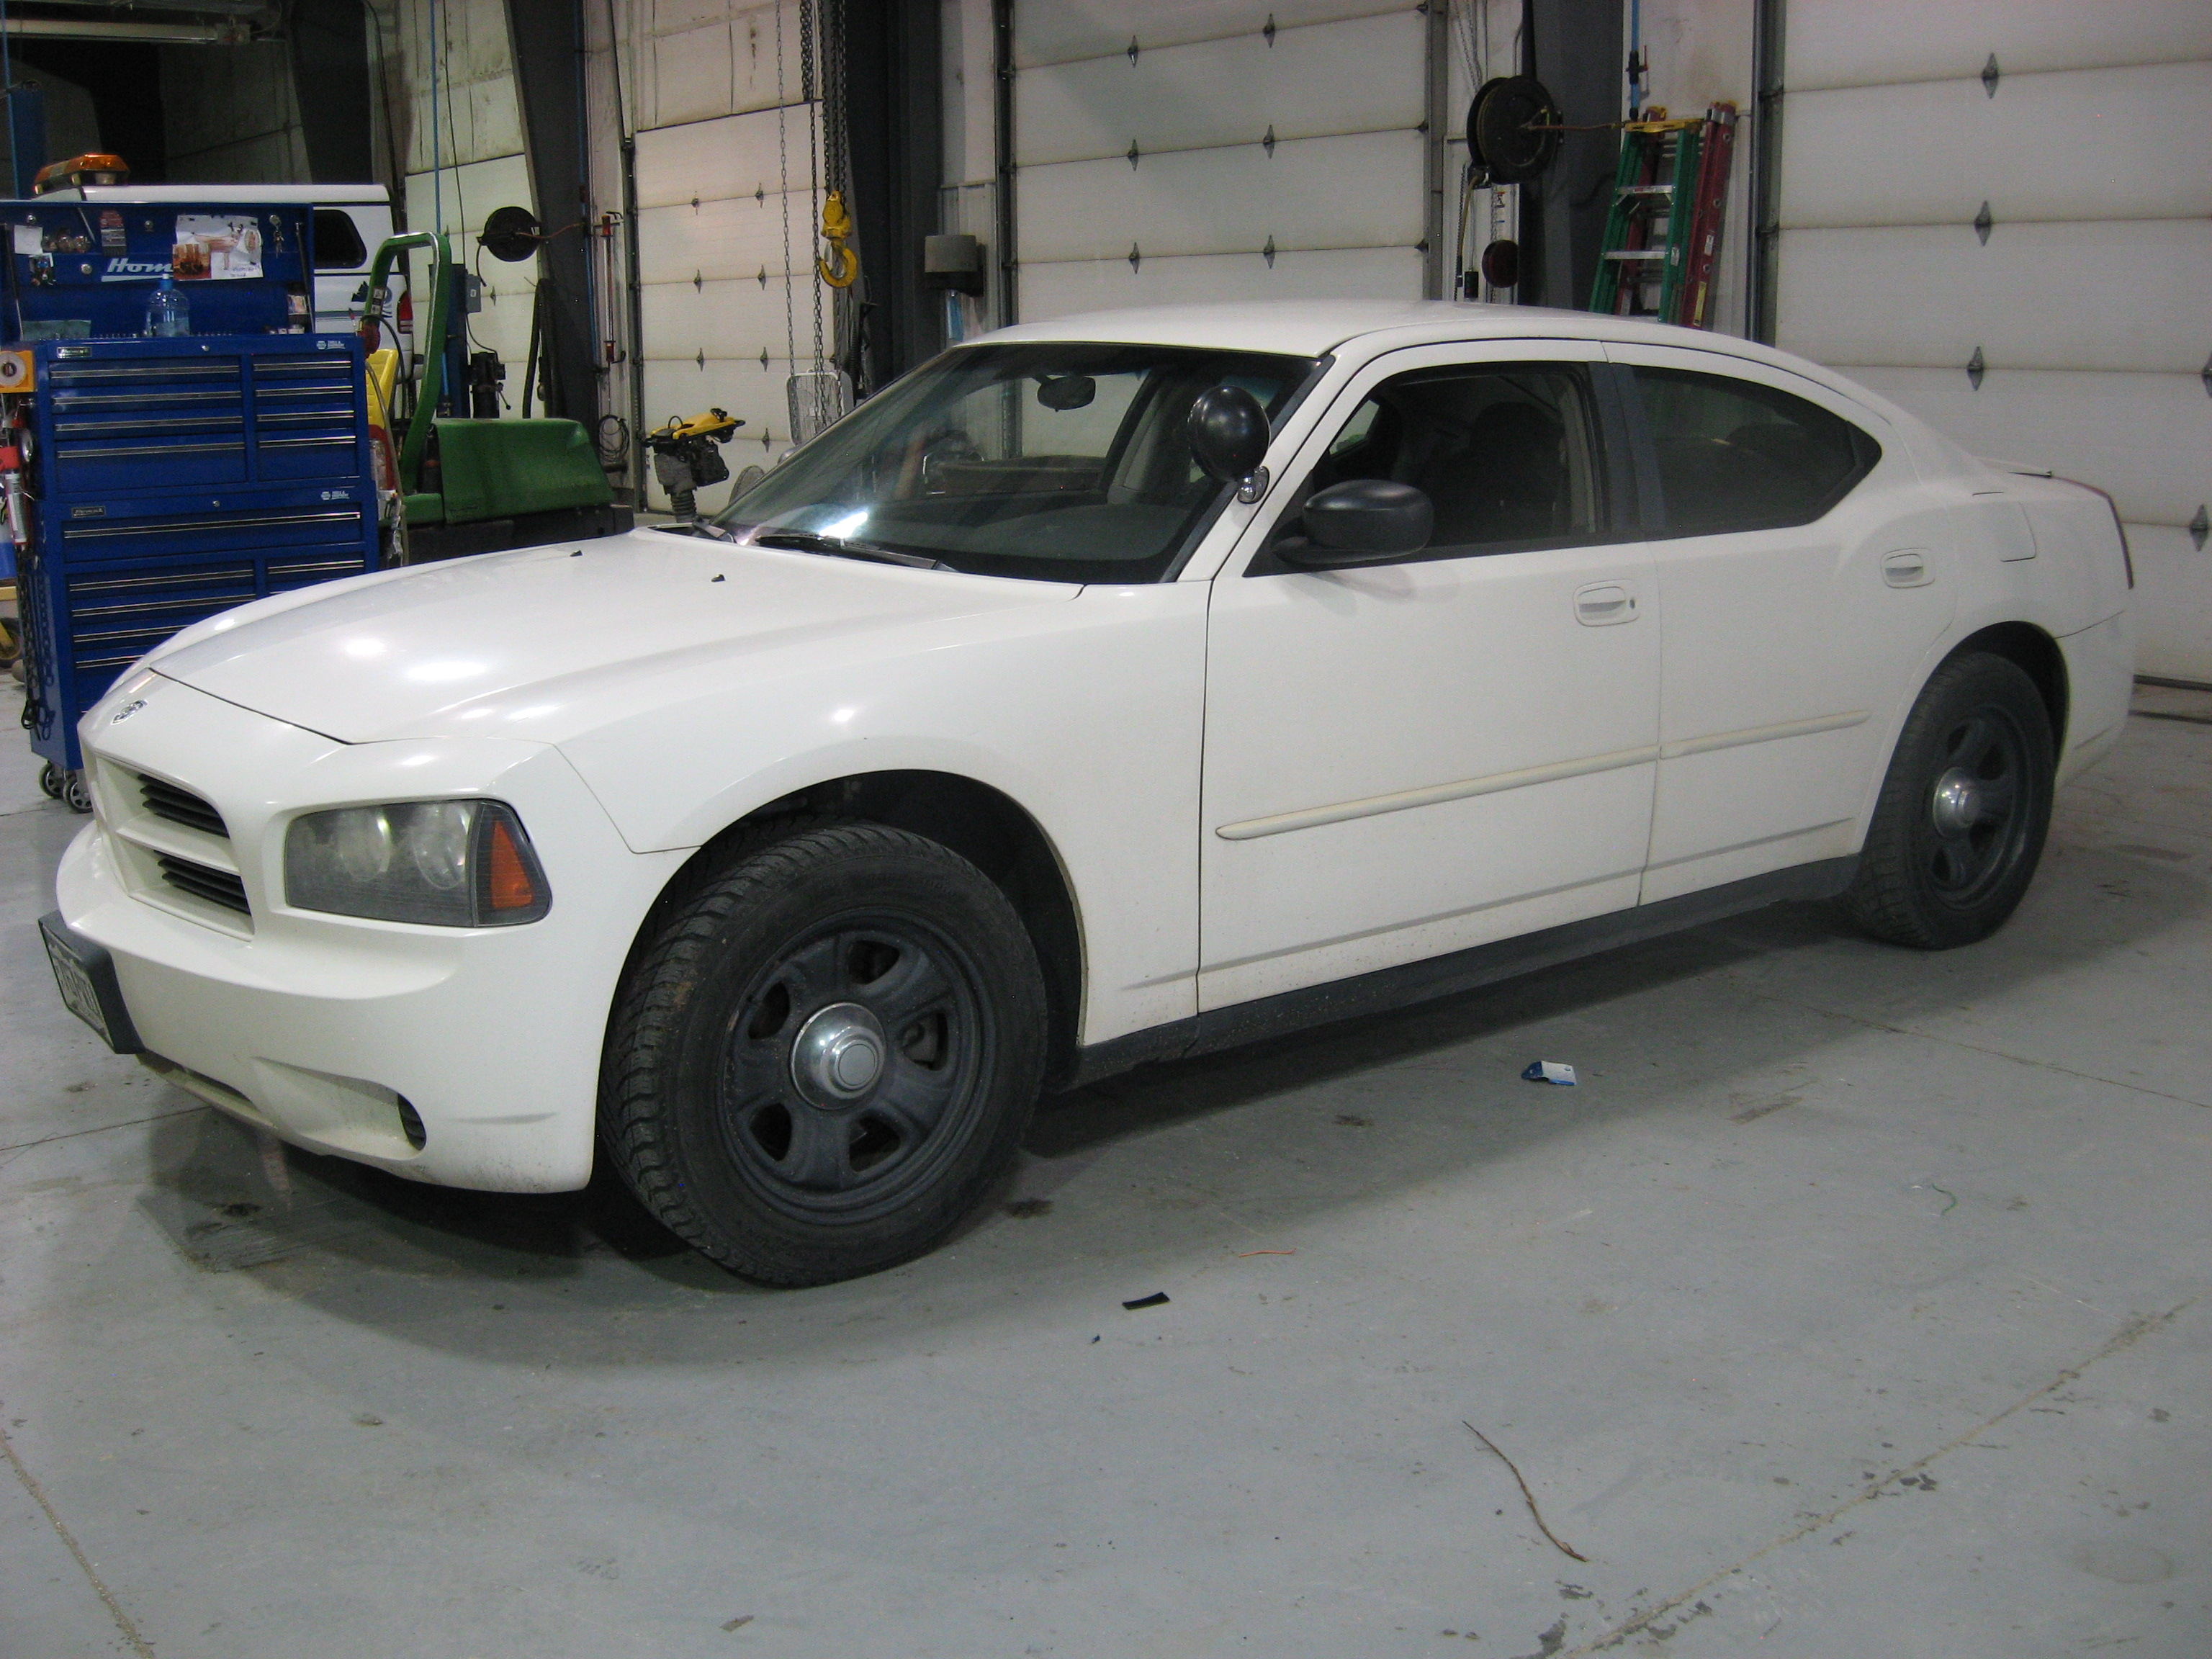 2014 Dodge Charger Warranty >> 2007 Dodge Charger - City of Alamosa